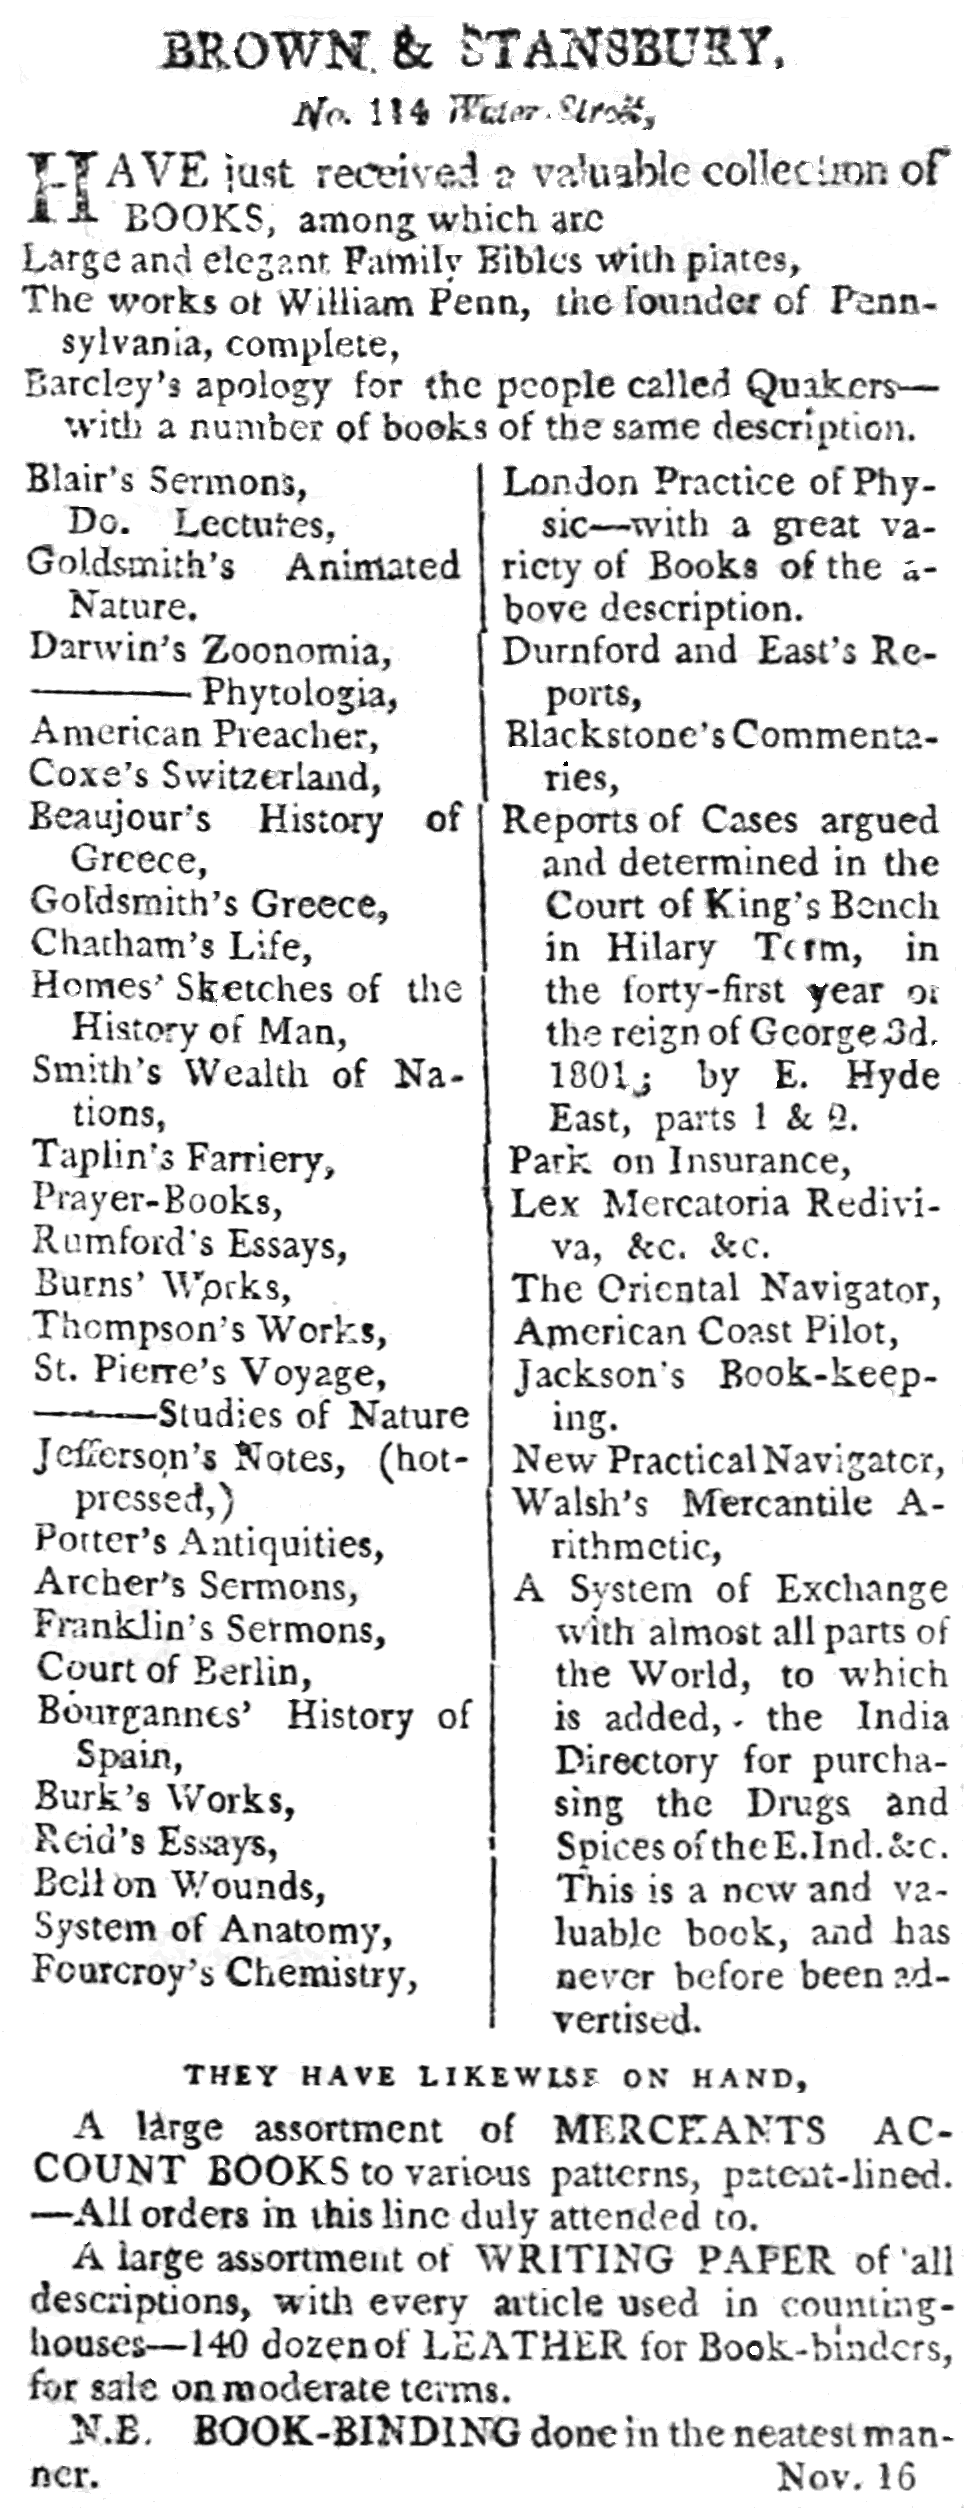 PSM V56 D0207 Bookseller advertisement from the new york evening post 1801.png